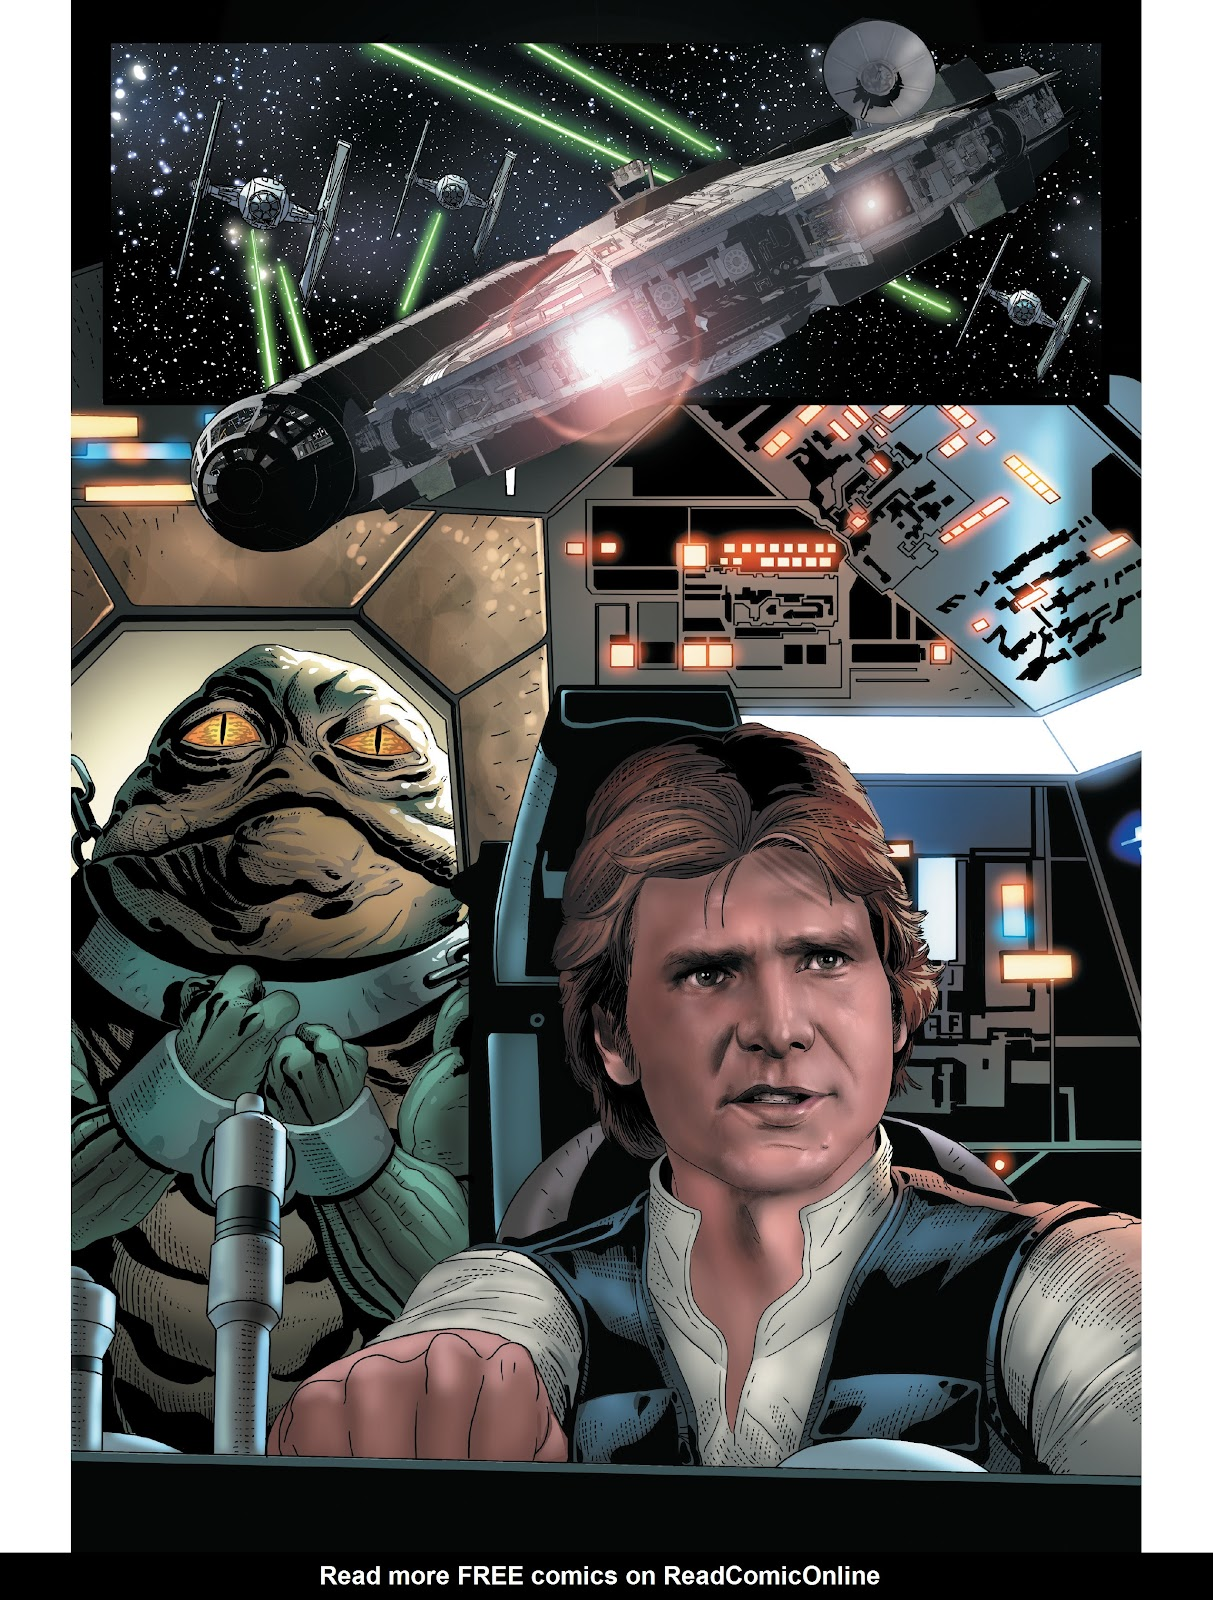 Read online The Marvel Art of Star Wars comic -  Issue # TPB (Part 2) - 15